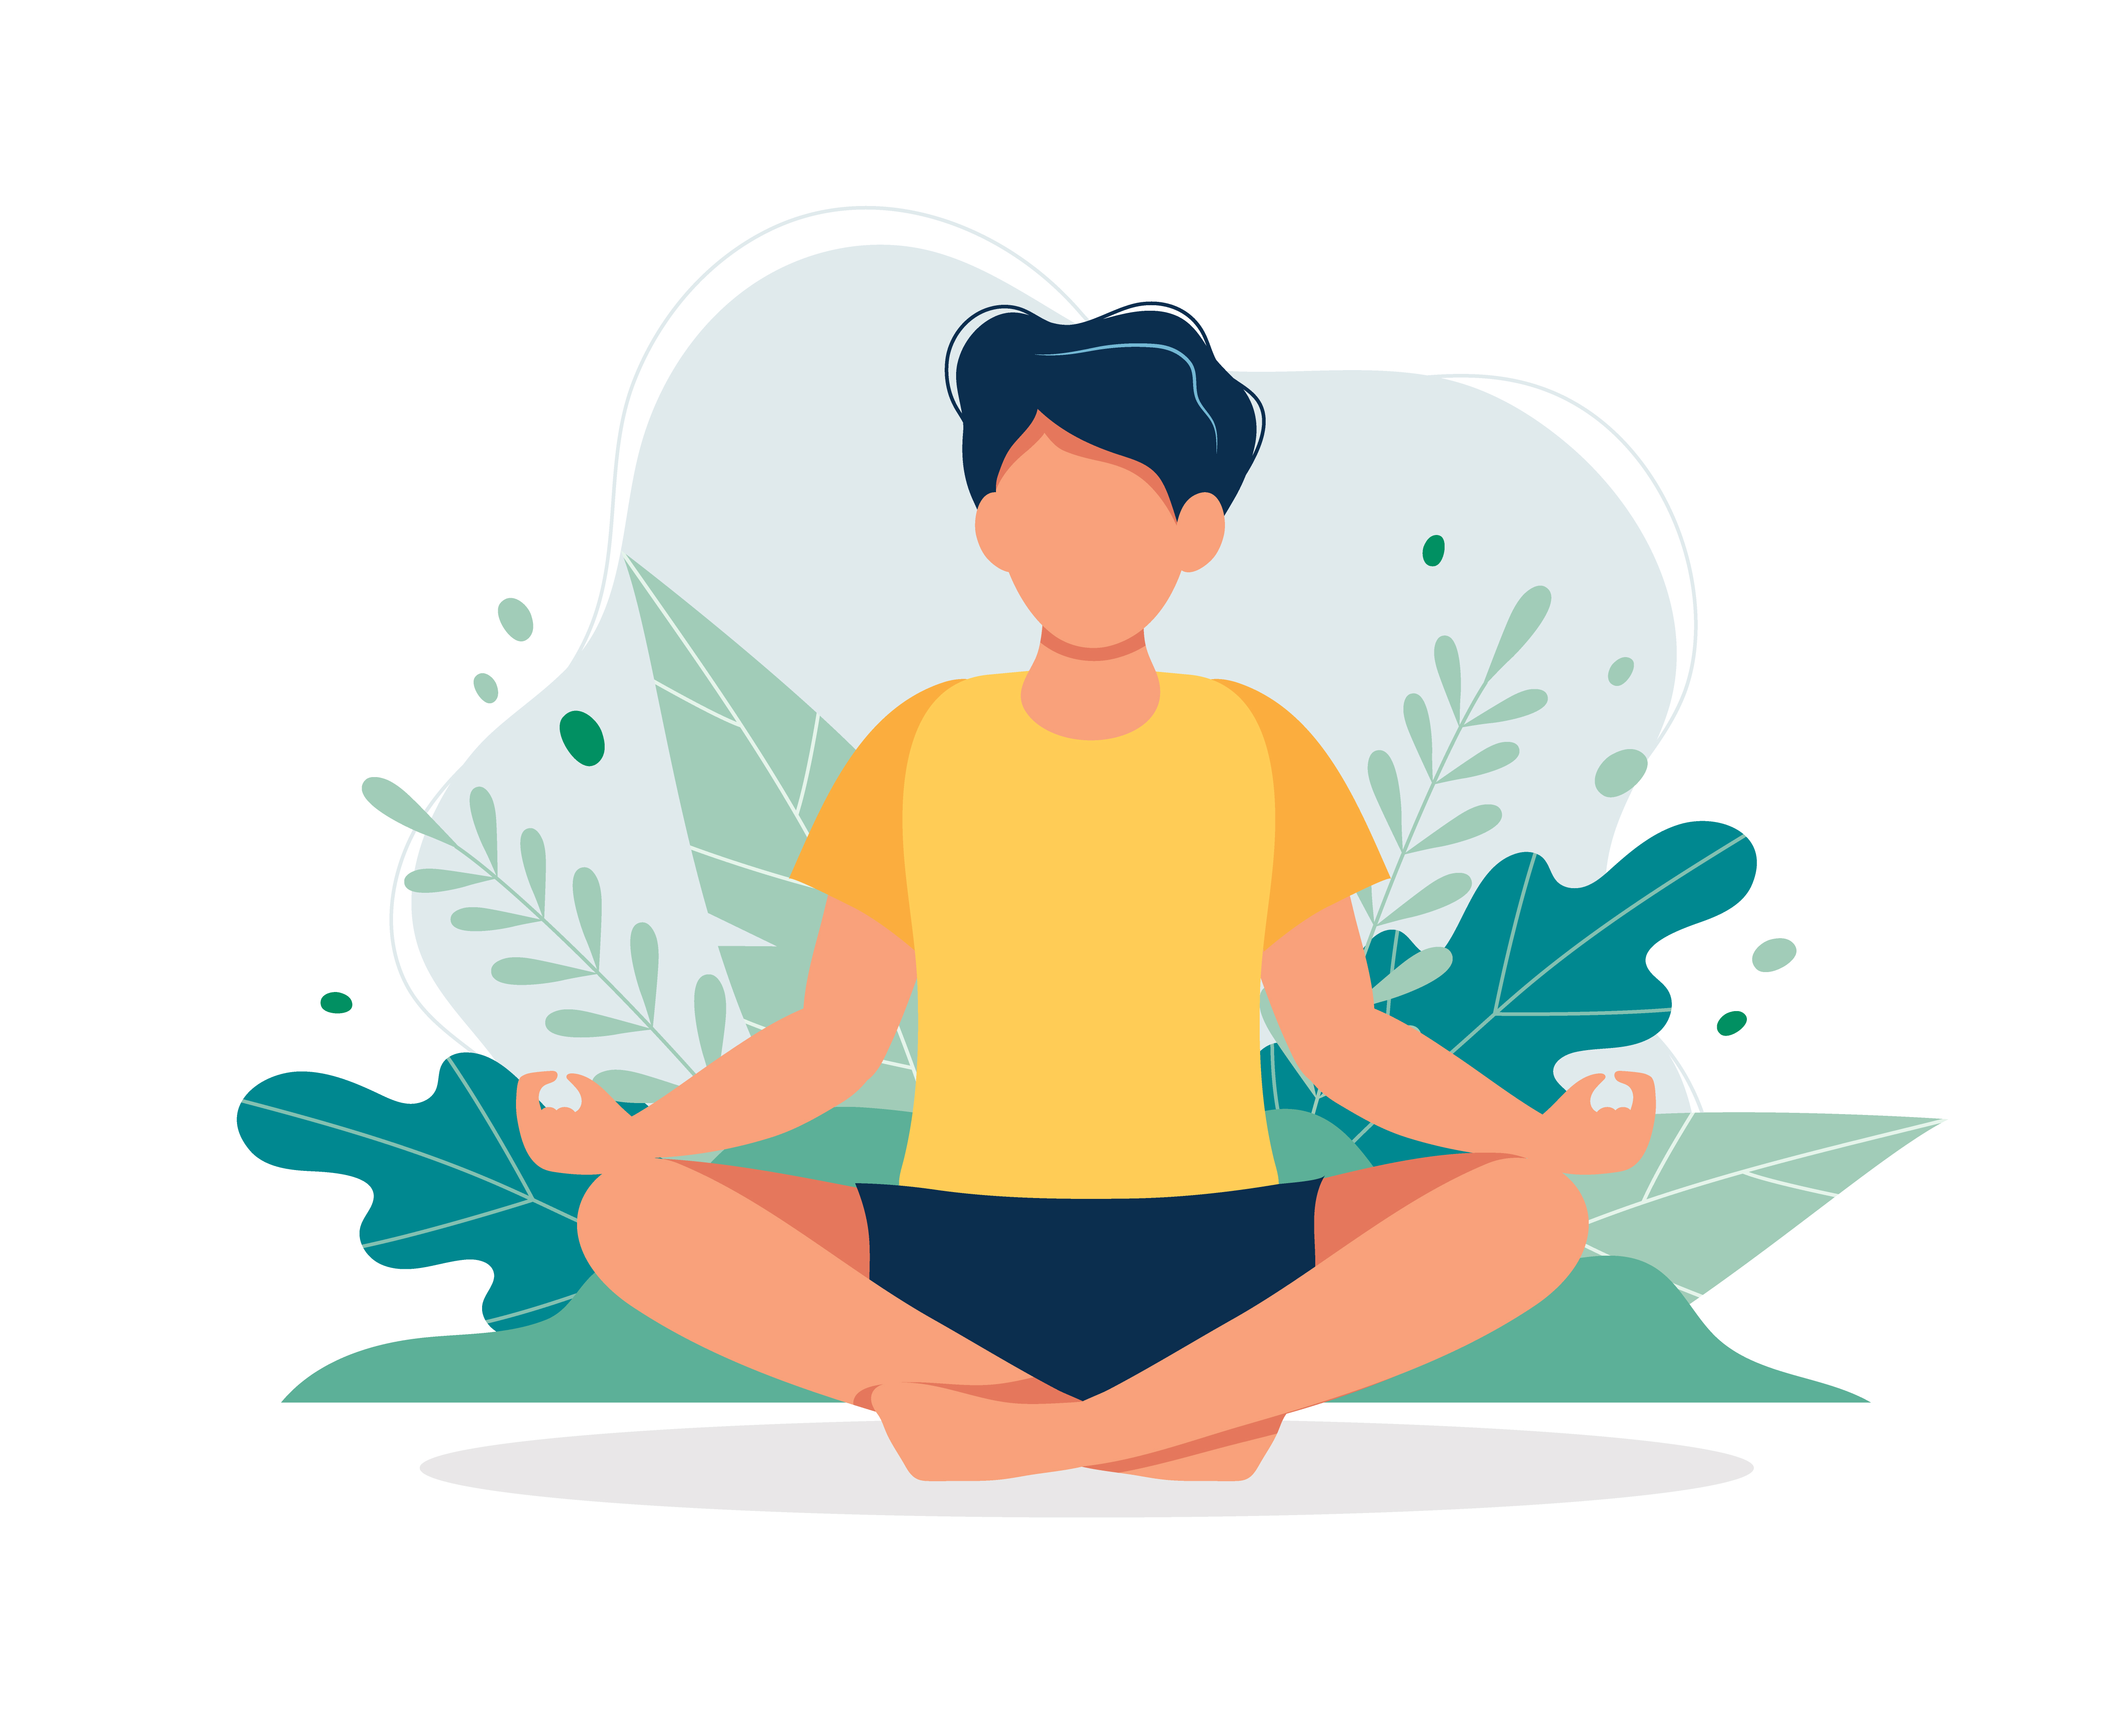 Man Meditating In Nature And Leaves Concept Illustration For Yoga Meditation Relax Recreation Healthy Lifestyle Vector Illustration In Flat Cartoon Style Download Free Vectors Clipart Graphics Vector Art